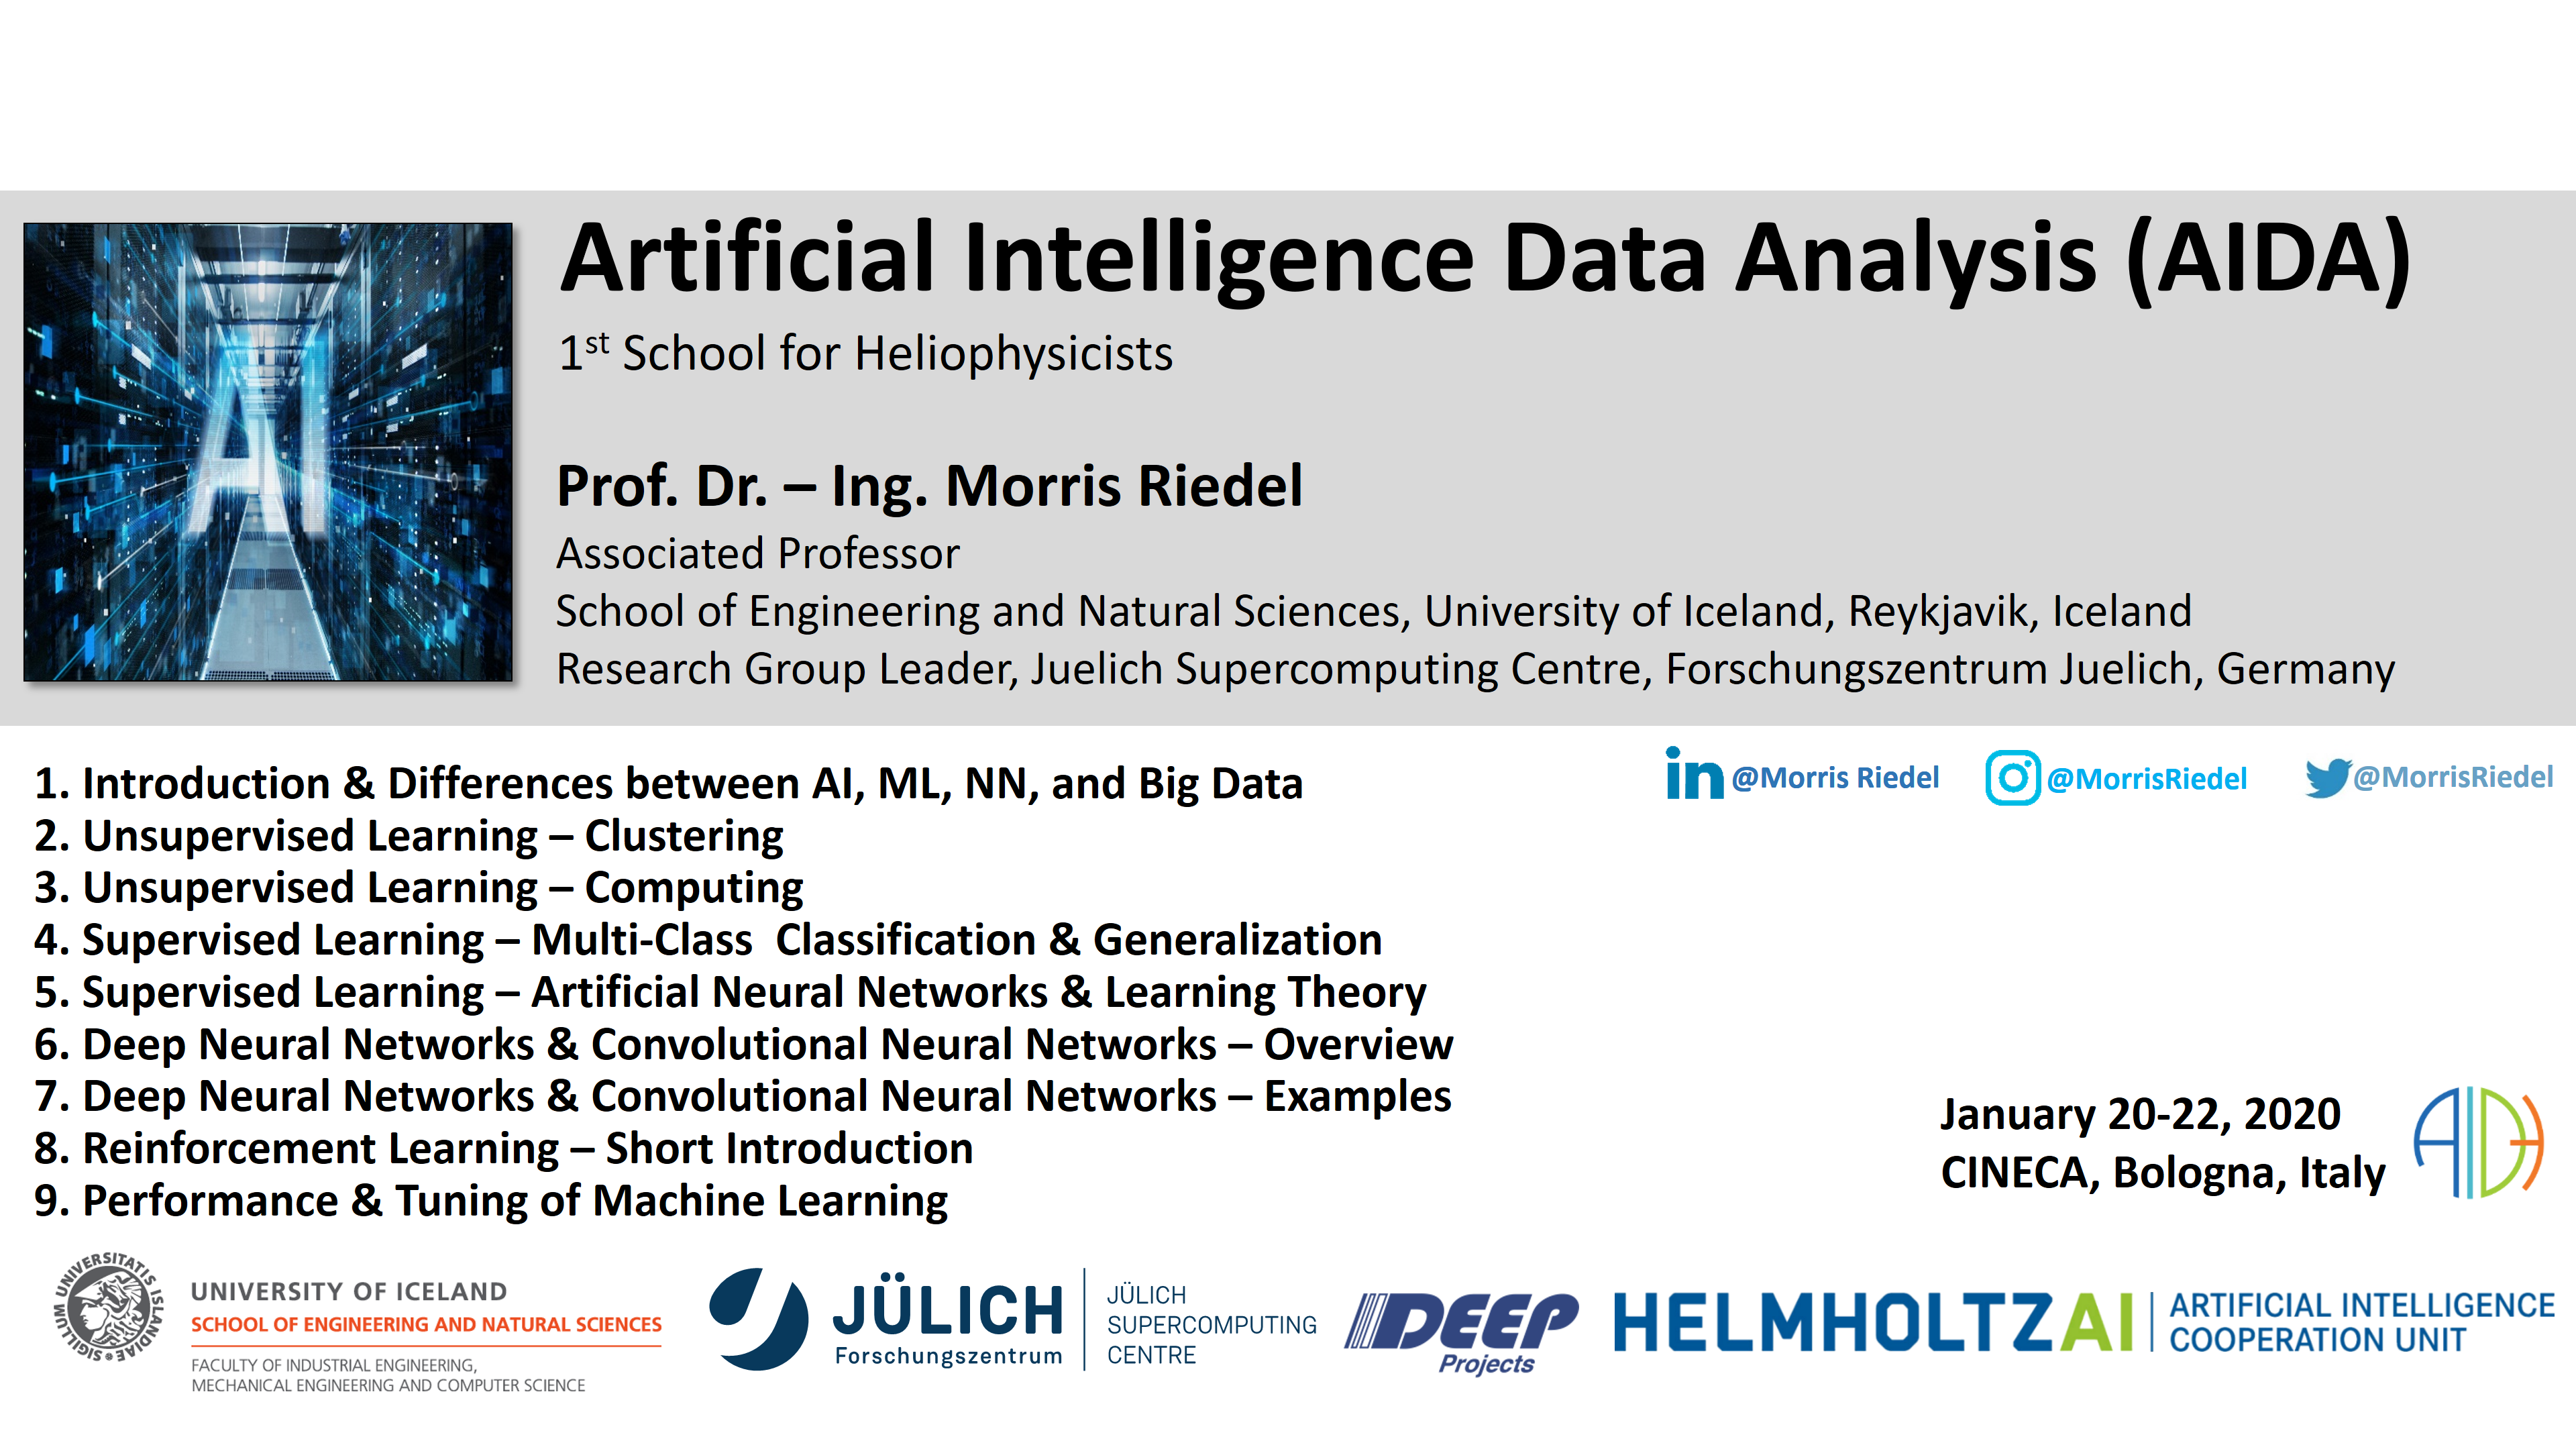 Artificial Intelligence Data Analysis School for Heliophysicists